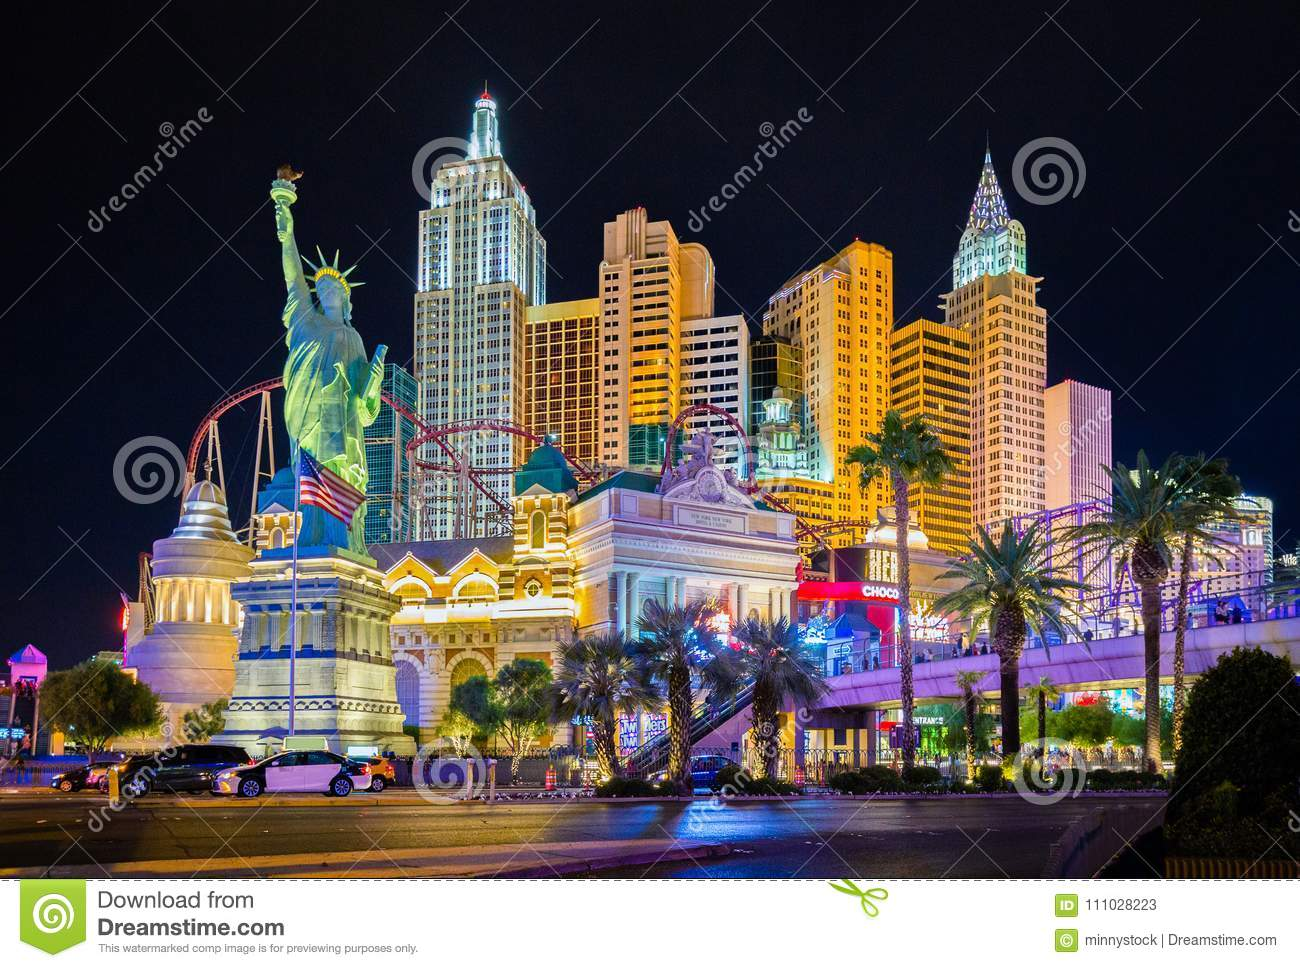 Las Vegas skyline illuminated at night, Nevada, USA